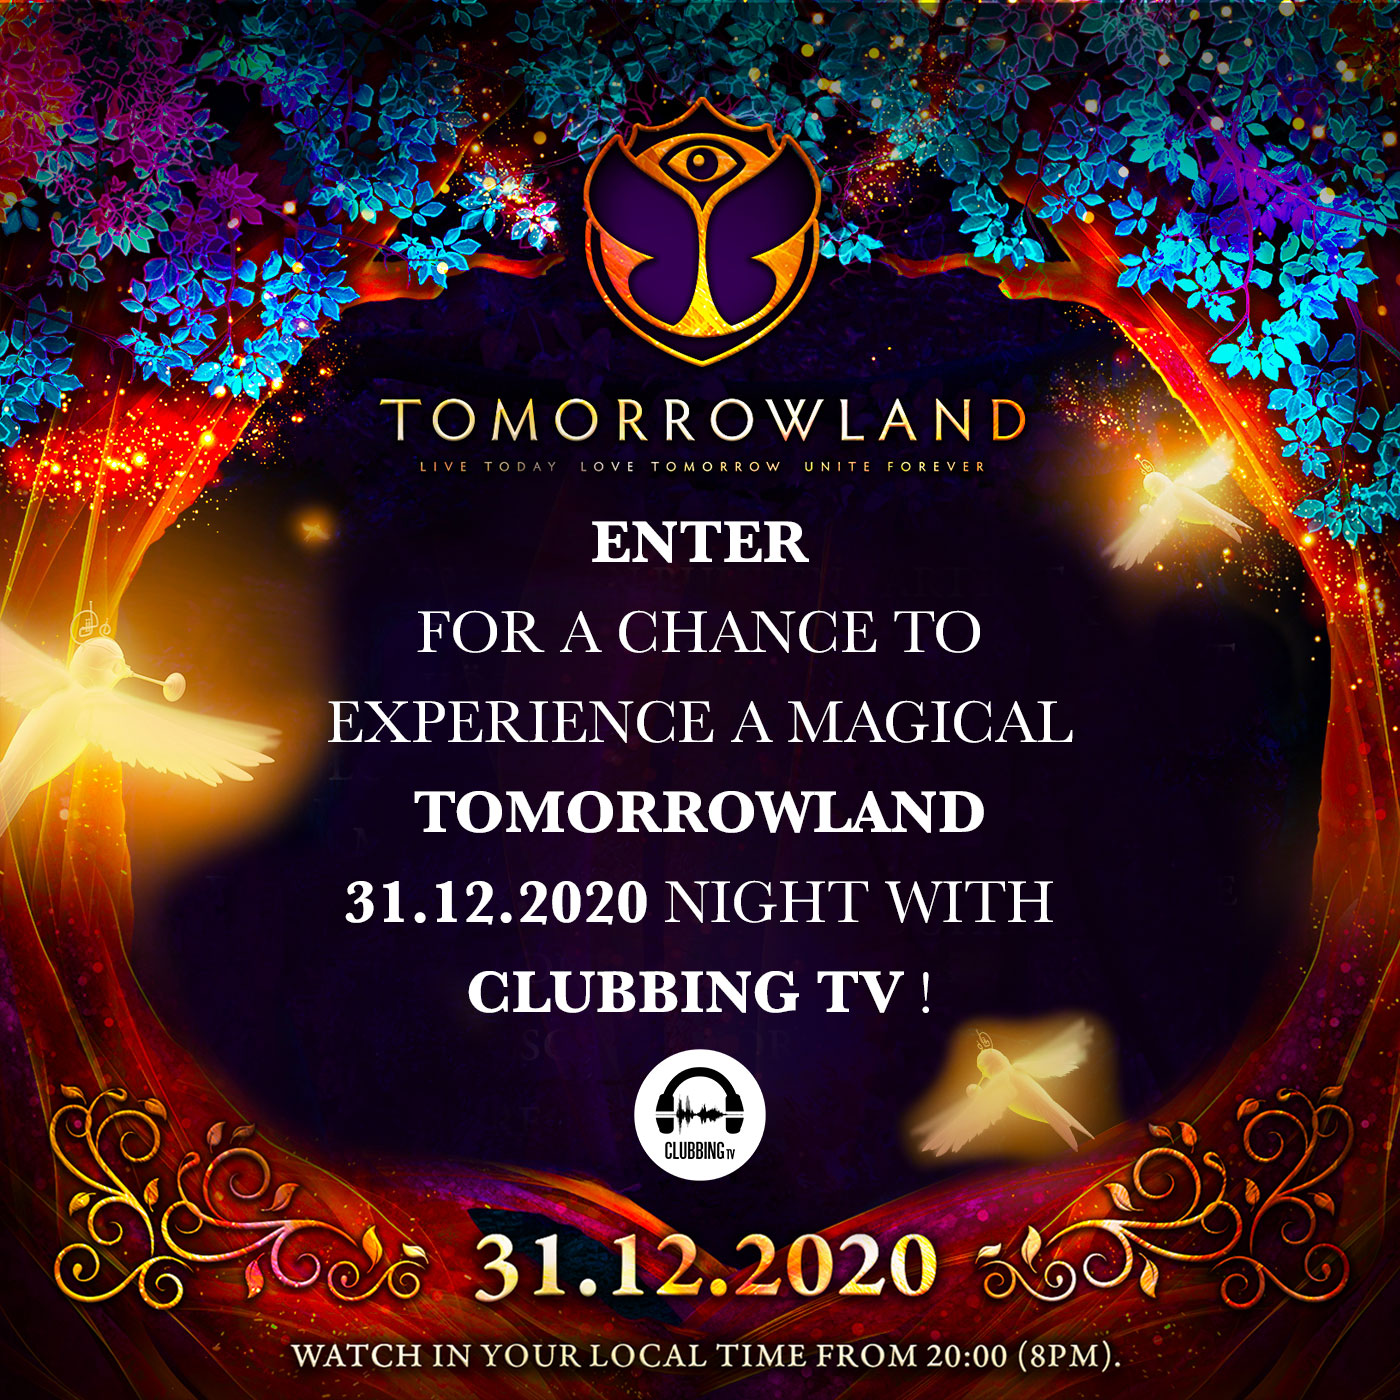 Get a chance to experience a magical TOMORROWLAND night with Clubbing TV!